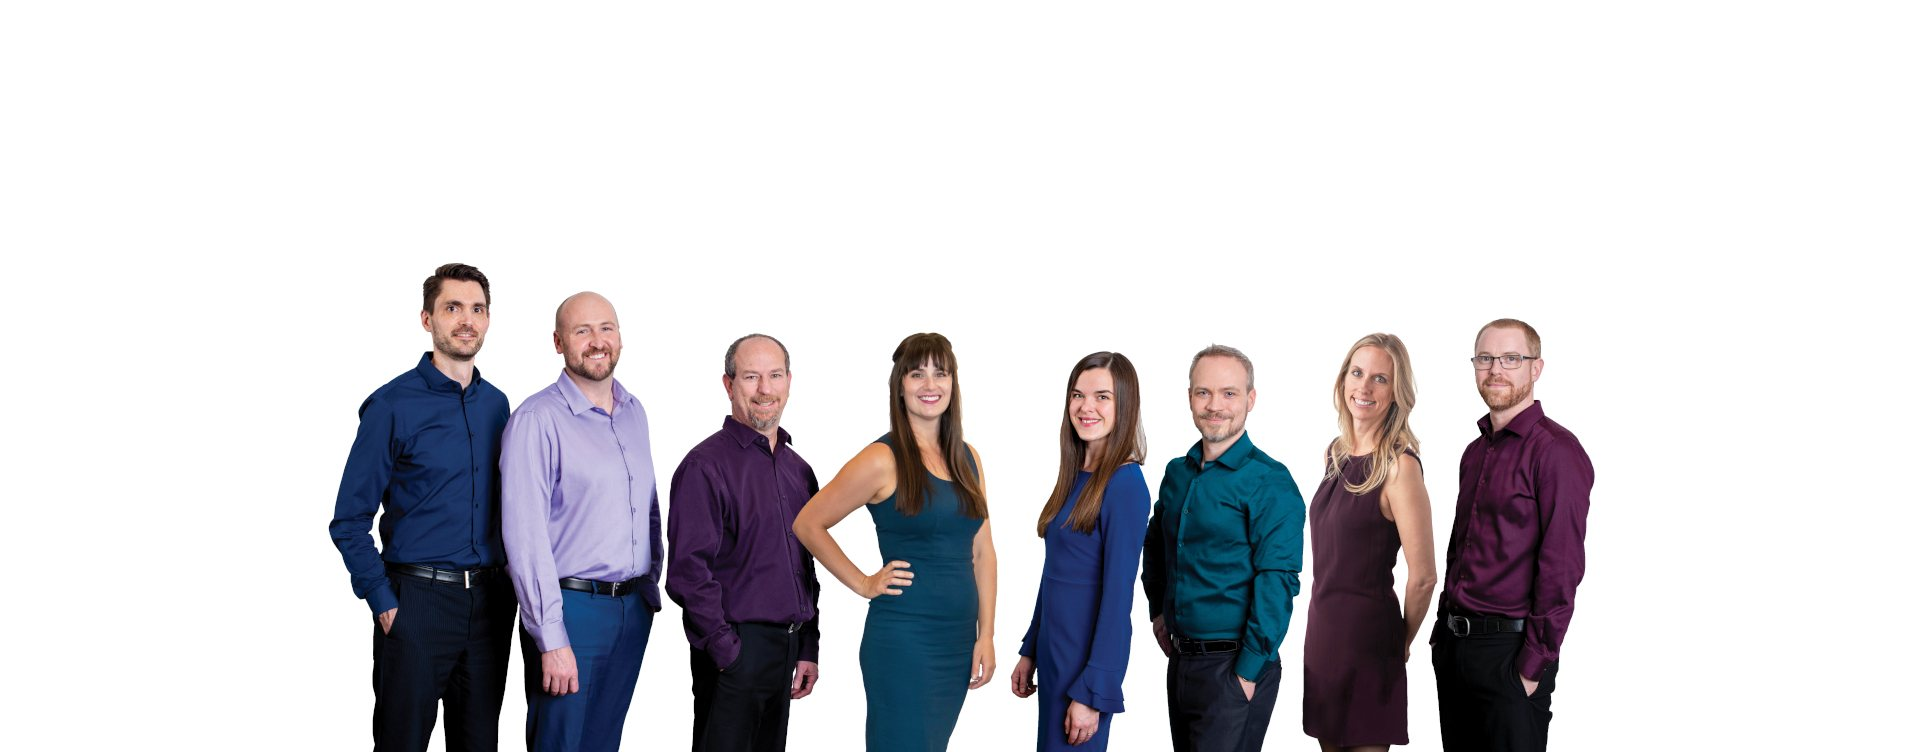 The 6 Kamloops lawyers at Forward Law